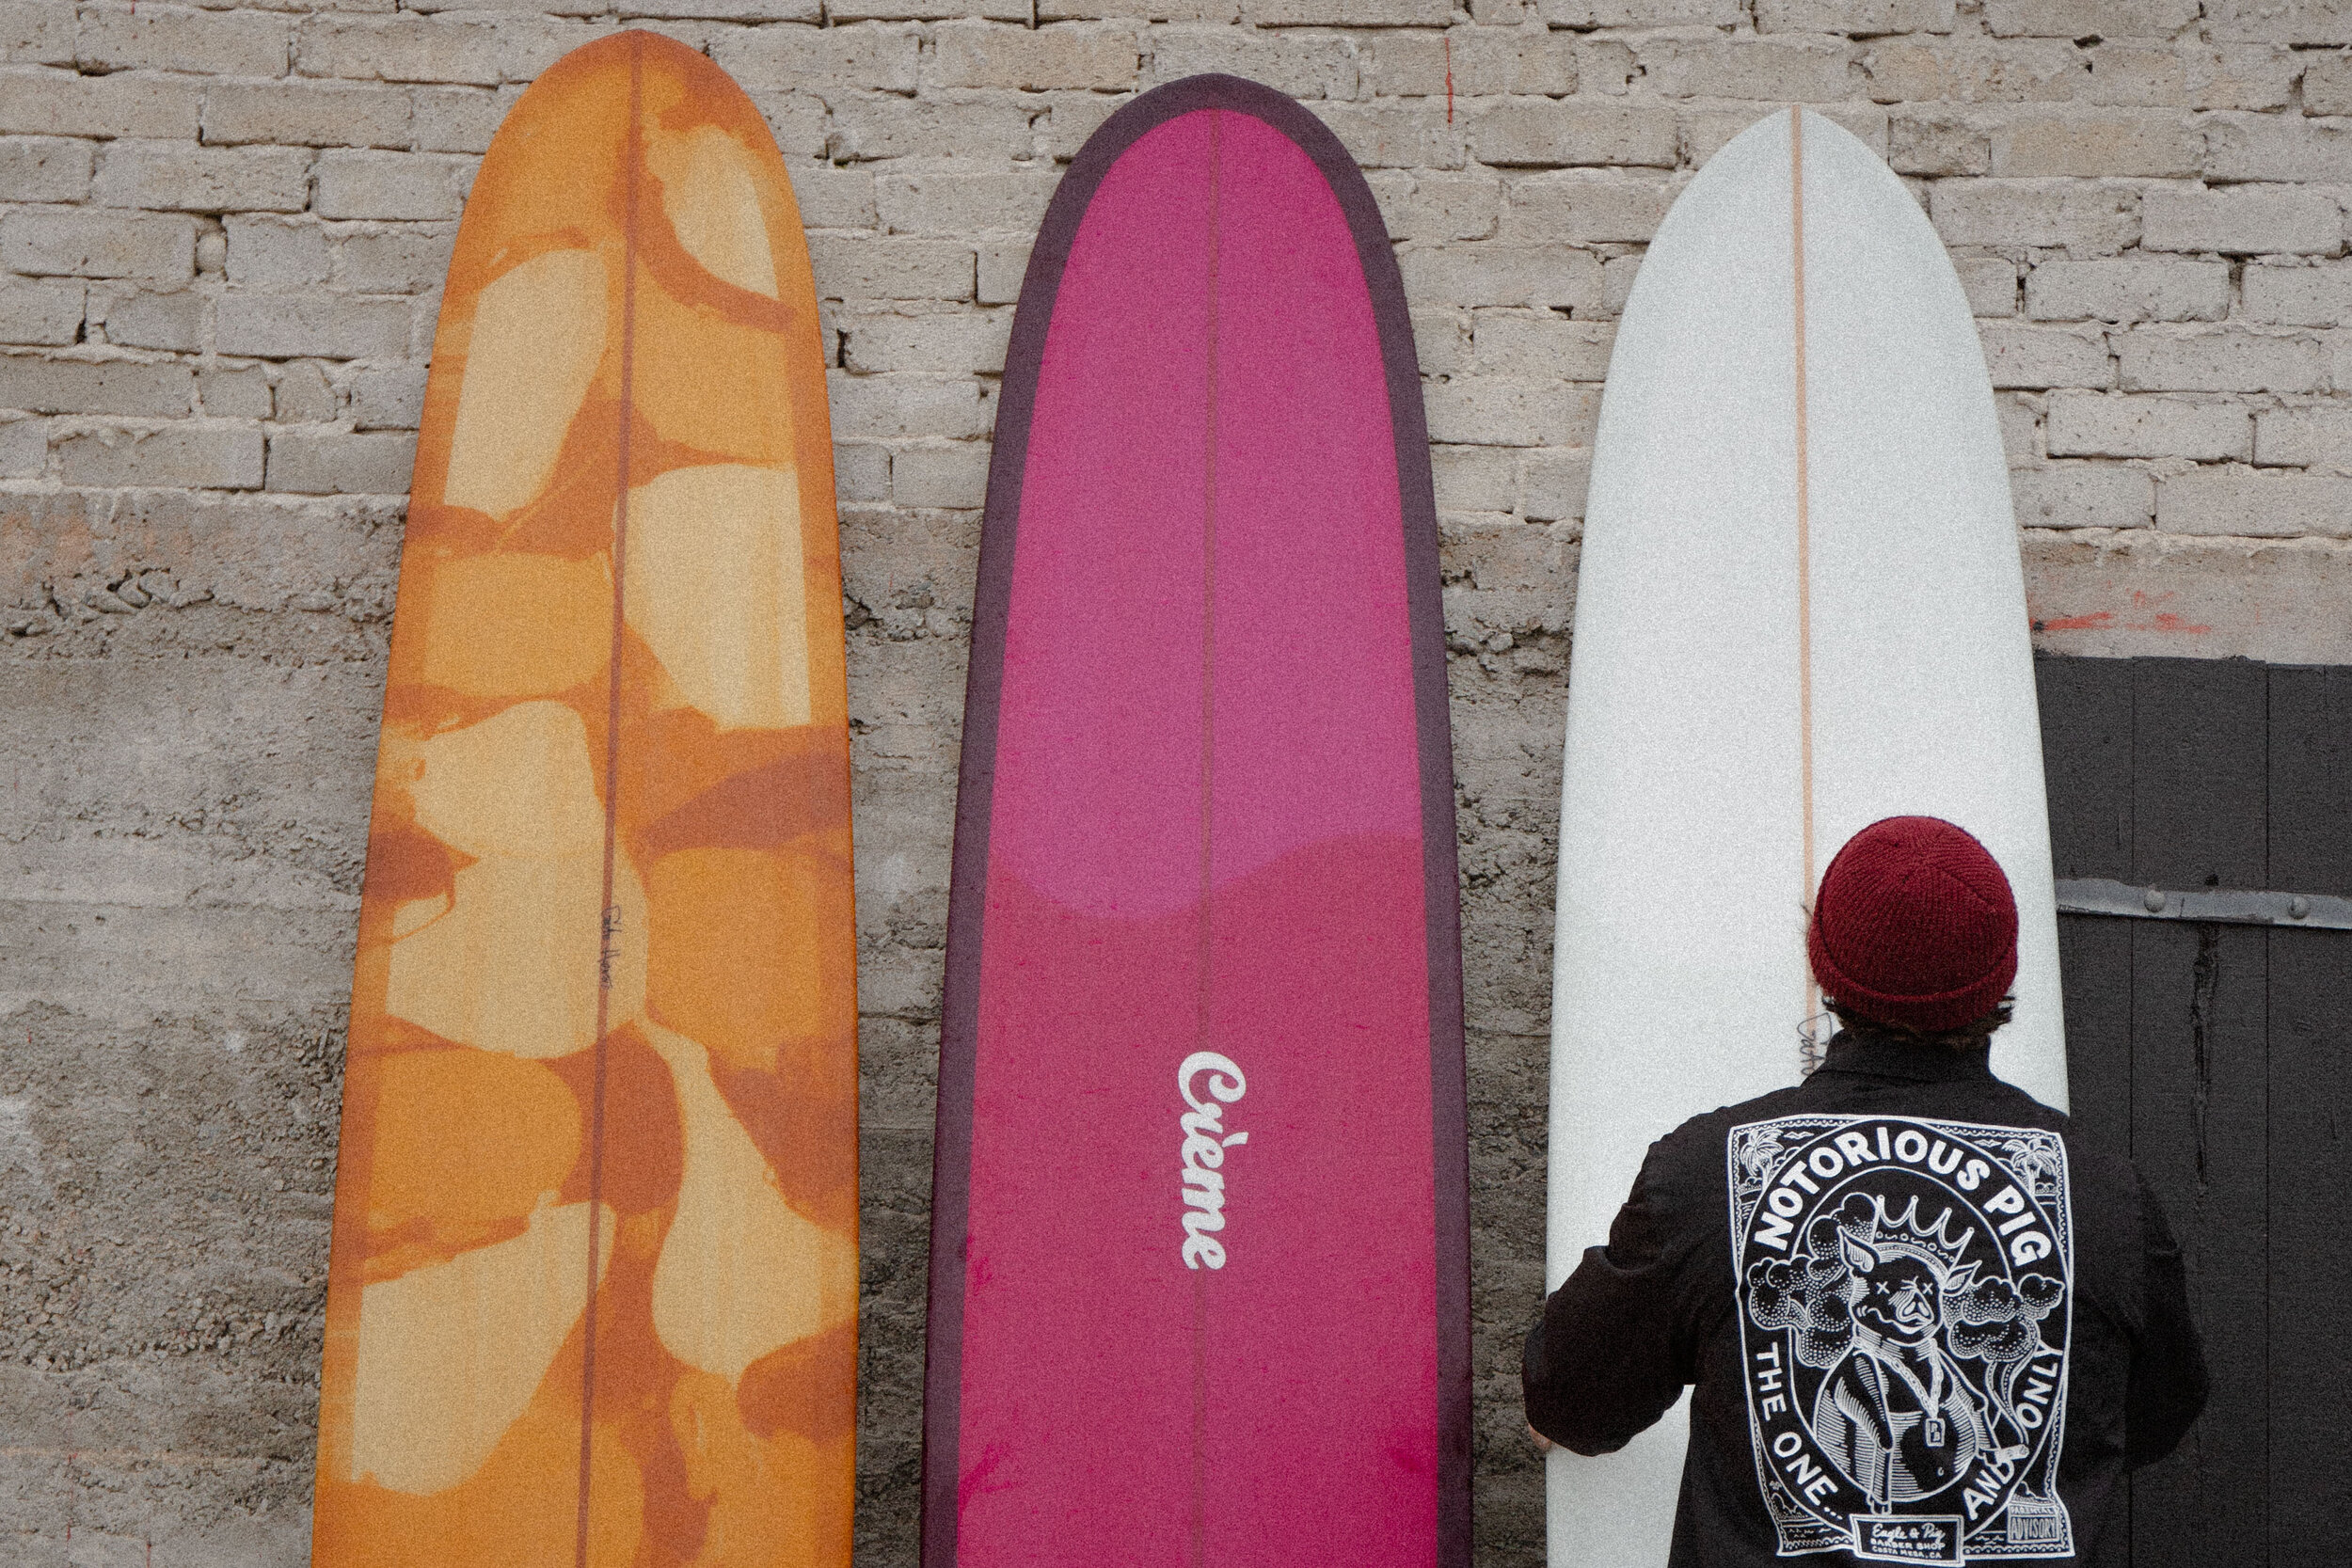 beachdayno_surfboards_barn-6304-2.jpg